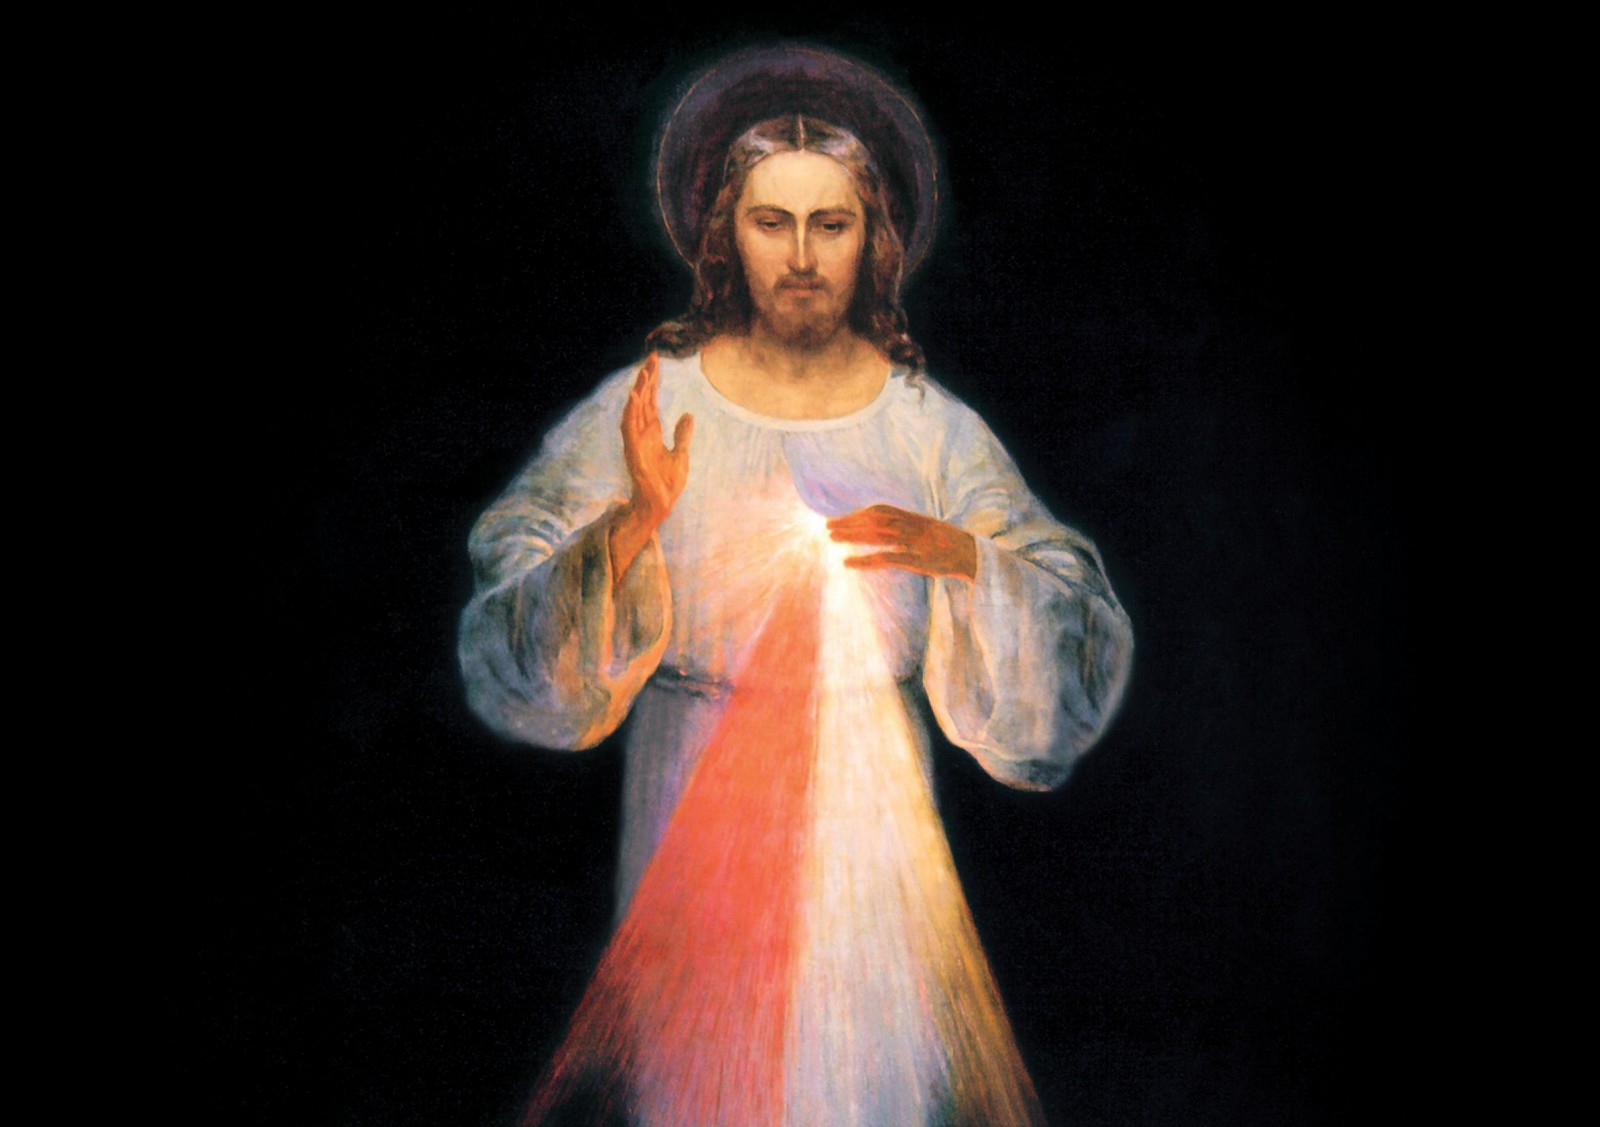 the divinity of jesus While the divinity of jesus is an underlying theme that unifies the work, it is really more of a compilation of arguments defending the orthodox or historical view of jesus against modern criticisms than it is just a book defending his divinity.